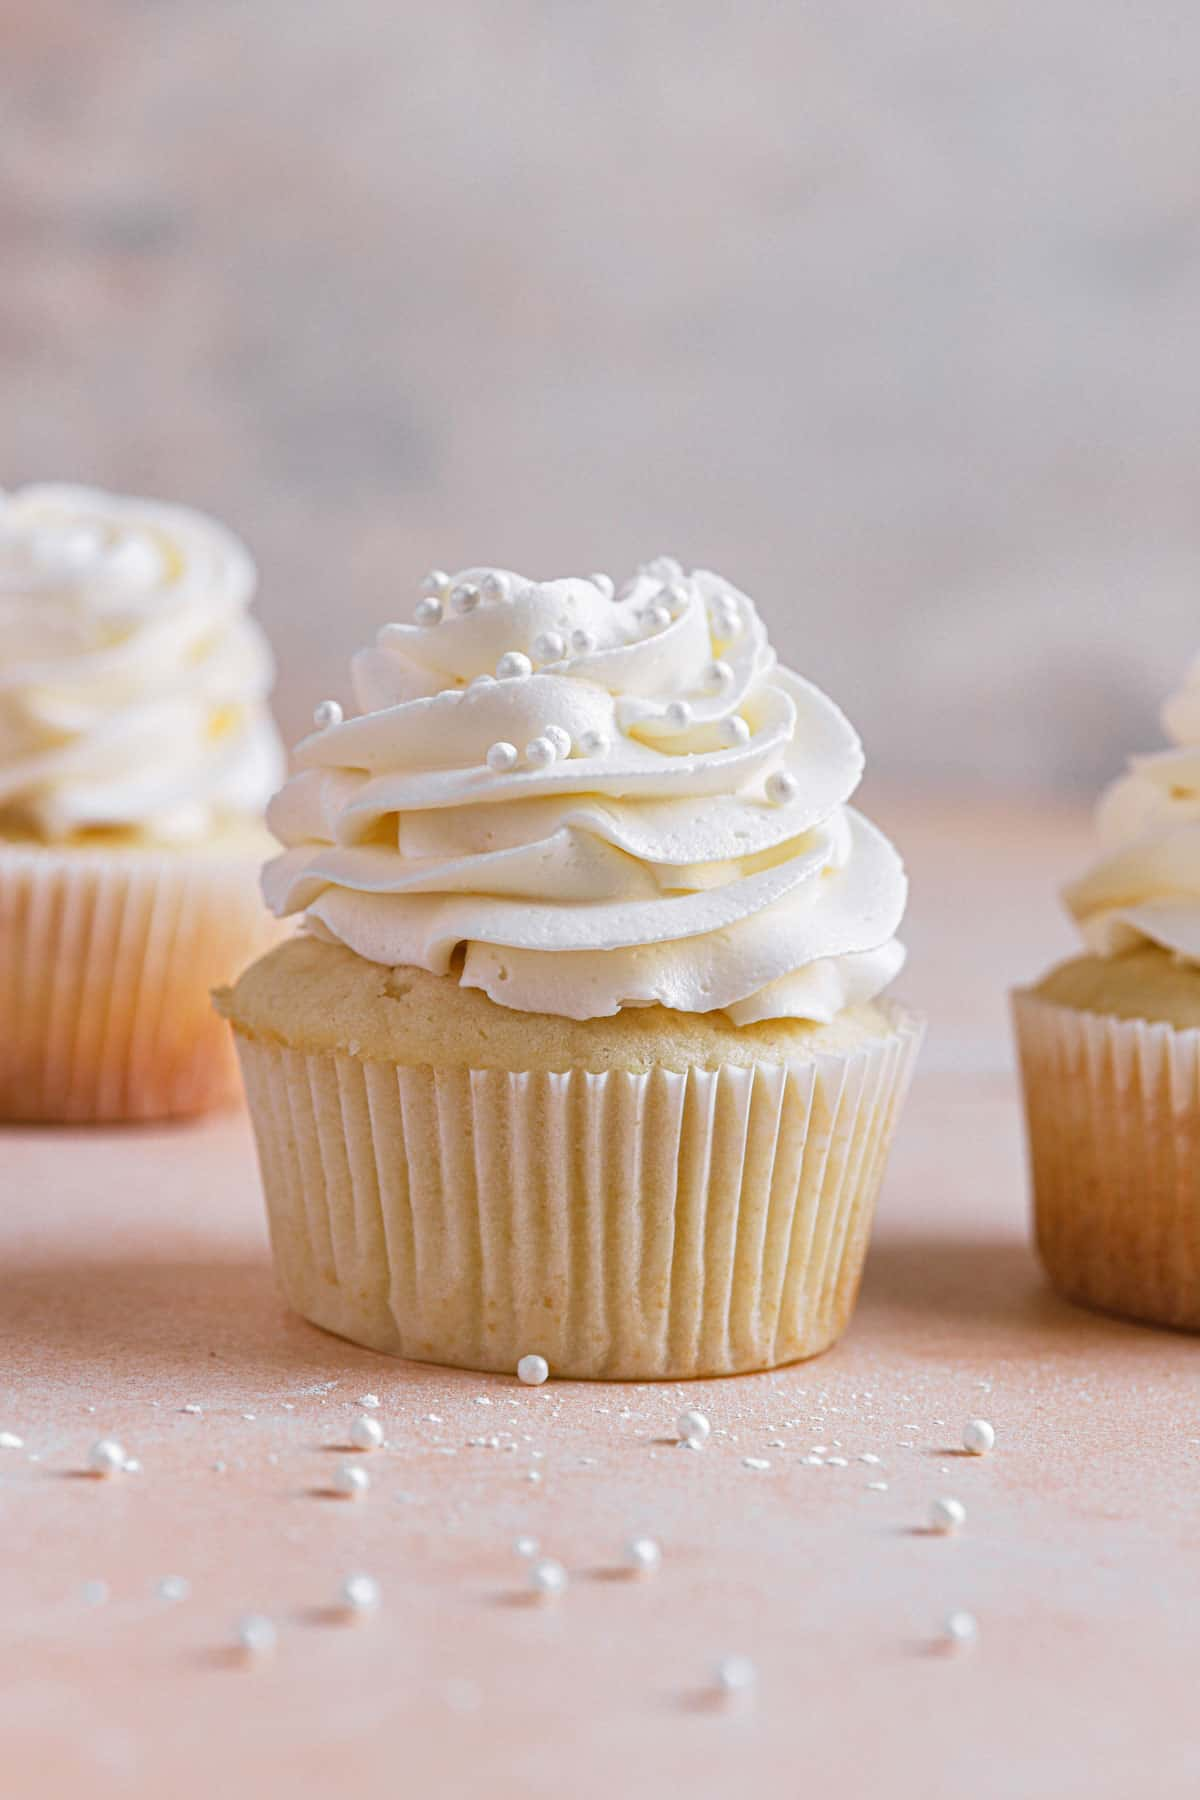 A vanilla cupcake with vanilla frosting and sprinkles in the middle another to the right and one in the back left.